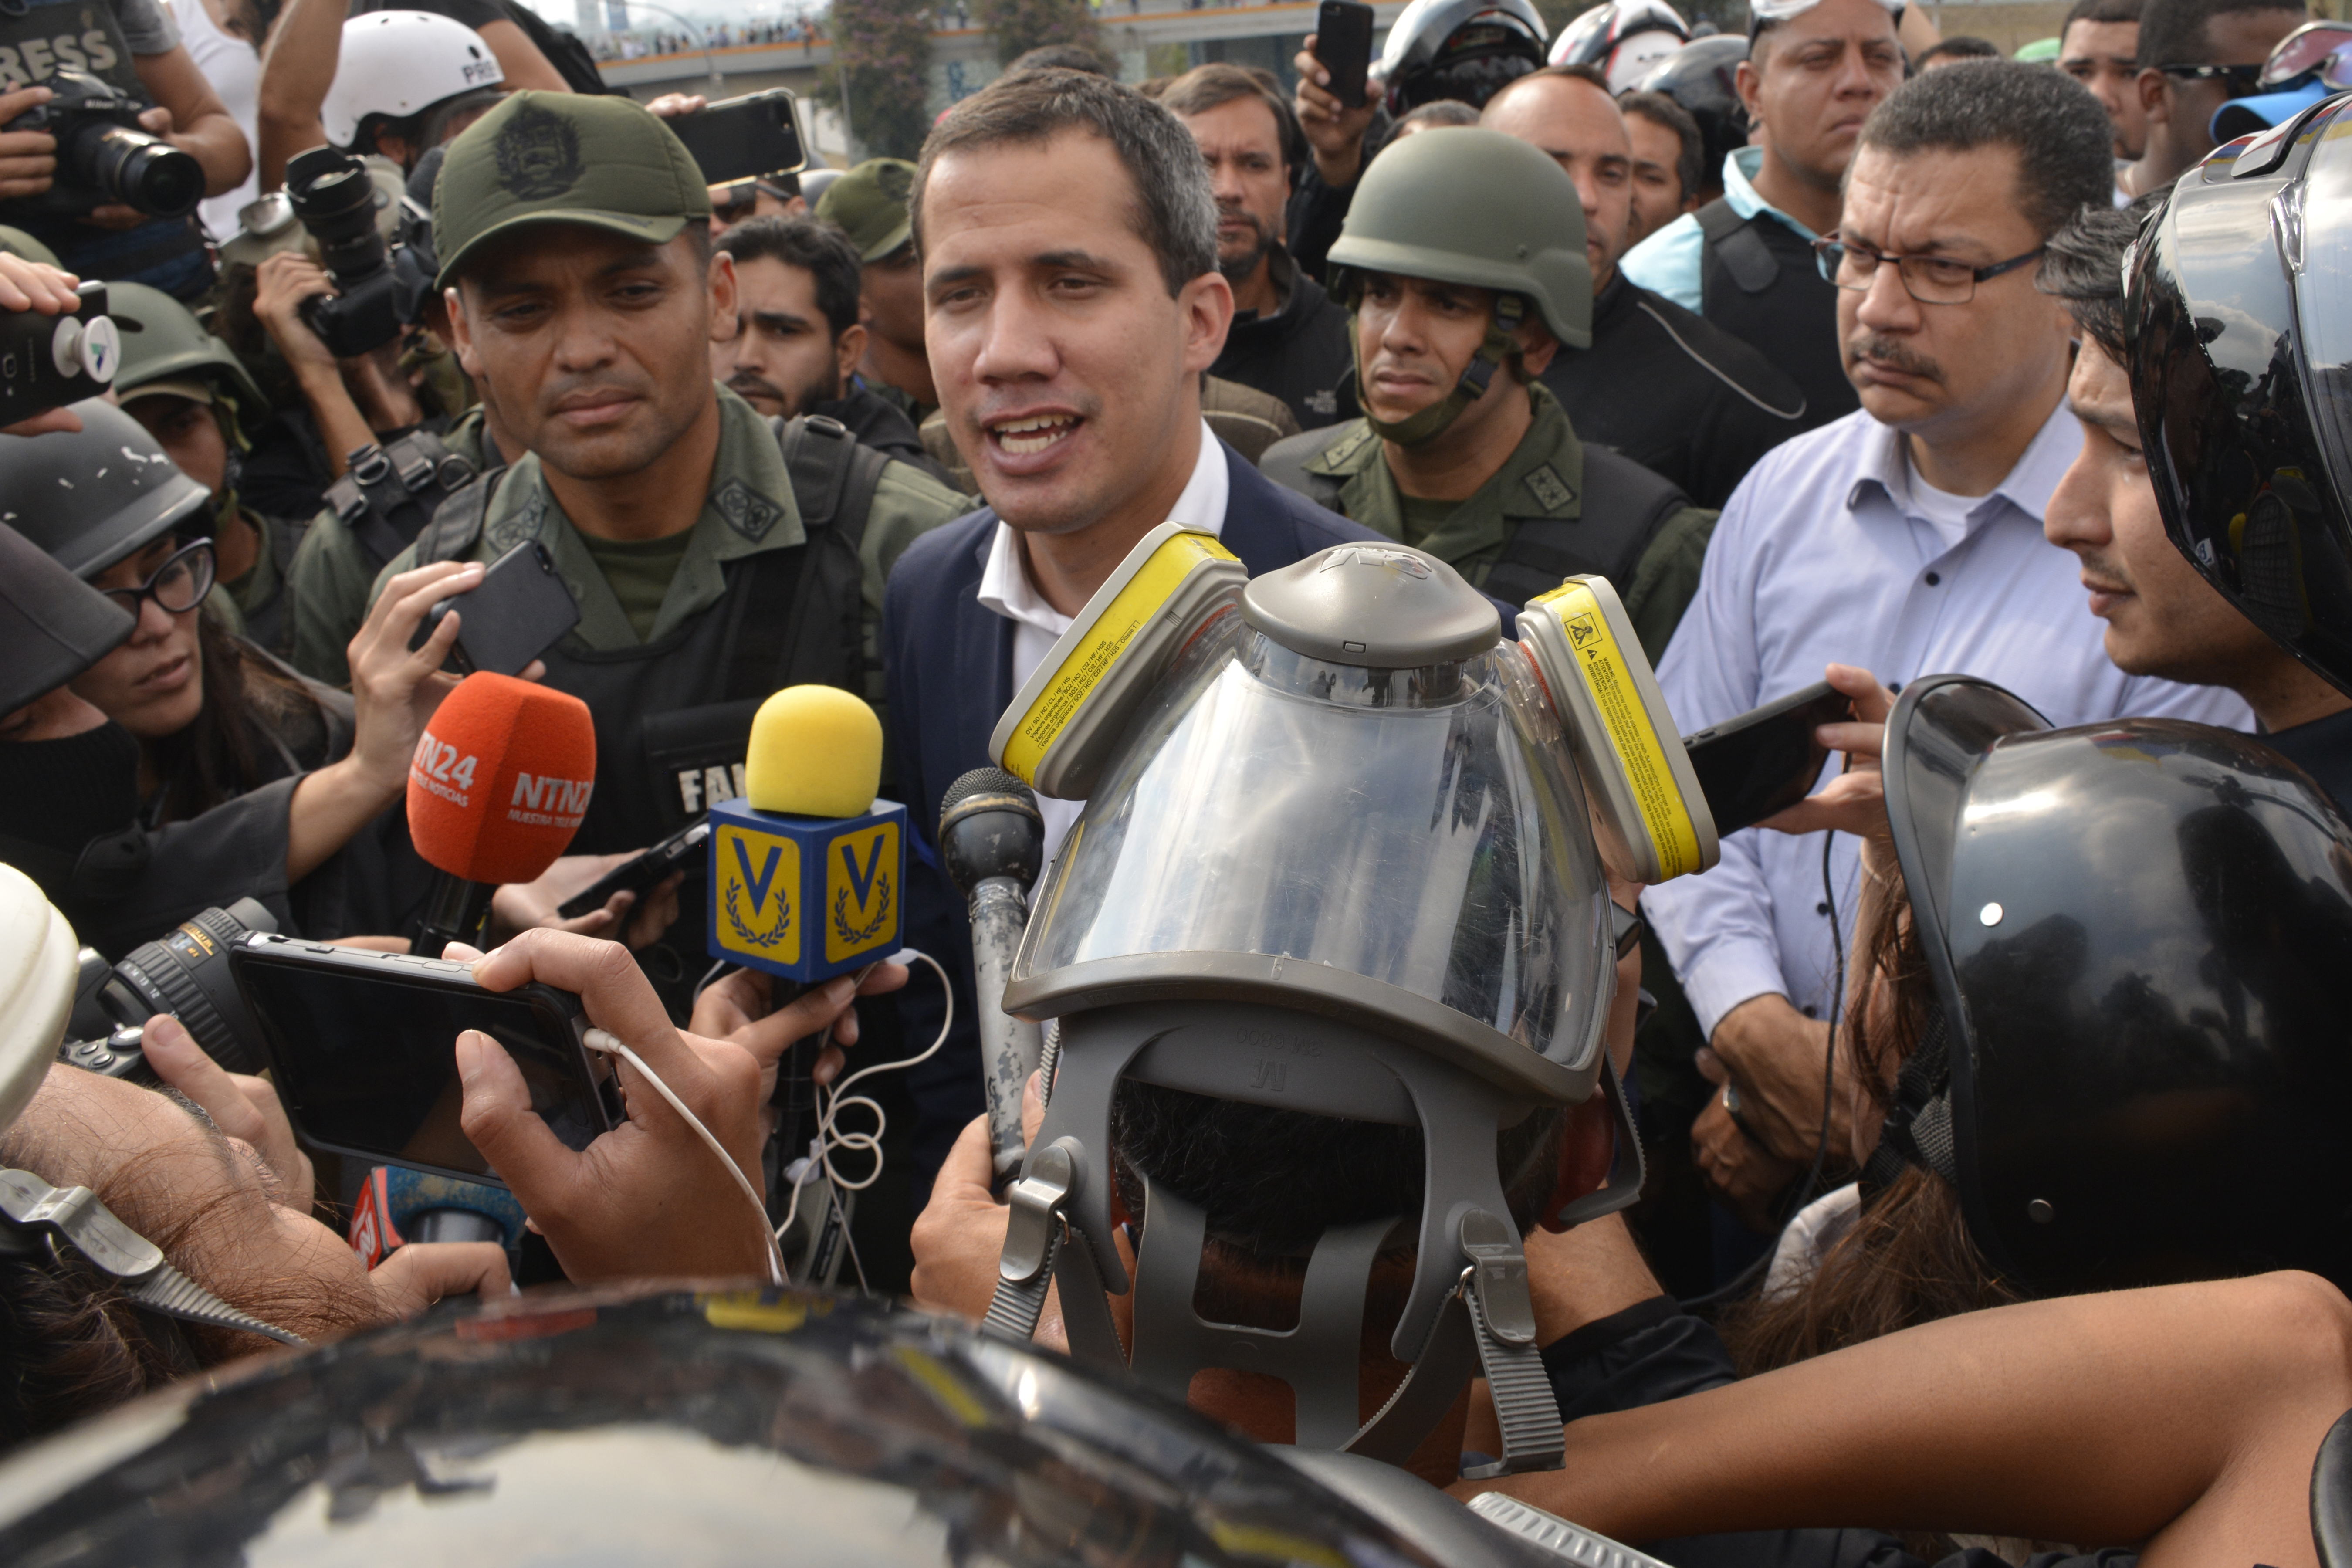 CARACAS, VENEZUELA - APRIL 30: Venezuelan opposition leader Juan Guaidó, recognized by many members of the international community as the country's rightful interim ruler, talks to media out of airforce base La Carlota on April 30, 2019 in Caracas, Venezuela. Through a live broadcast via social media, Venezuelan opposition leader Juan Guaido called for a military uprising against the government of Nicolás Maduro. He declared to be at the air base of La Carlota and was seen surrounded by soldiers and opposition activist Leopoldo Lopez, who was under house arrest. (Photo by Rafael Briceno/Getty Images)